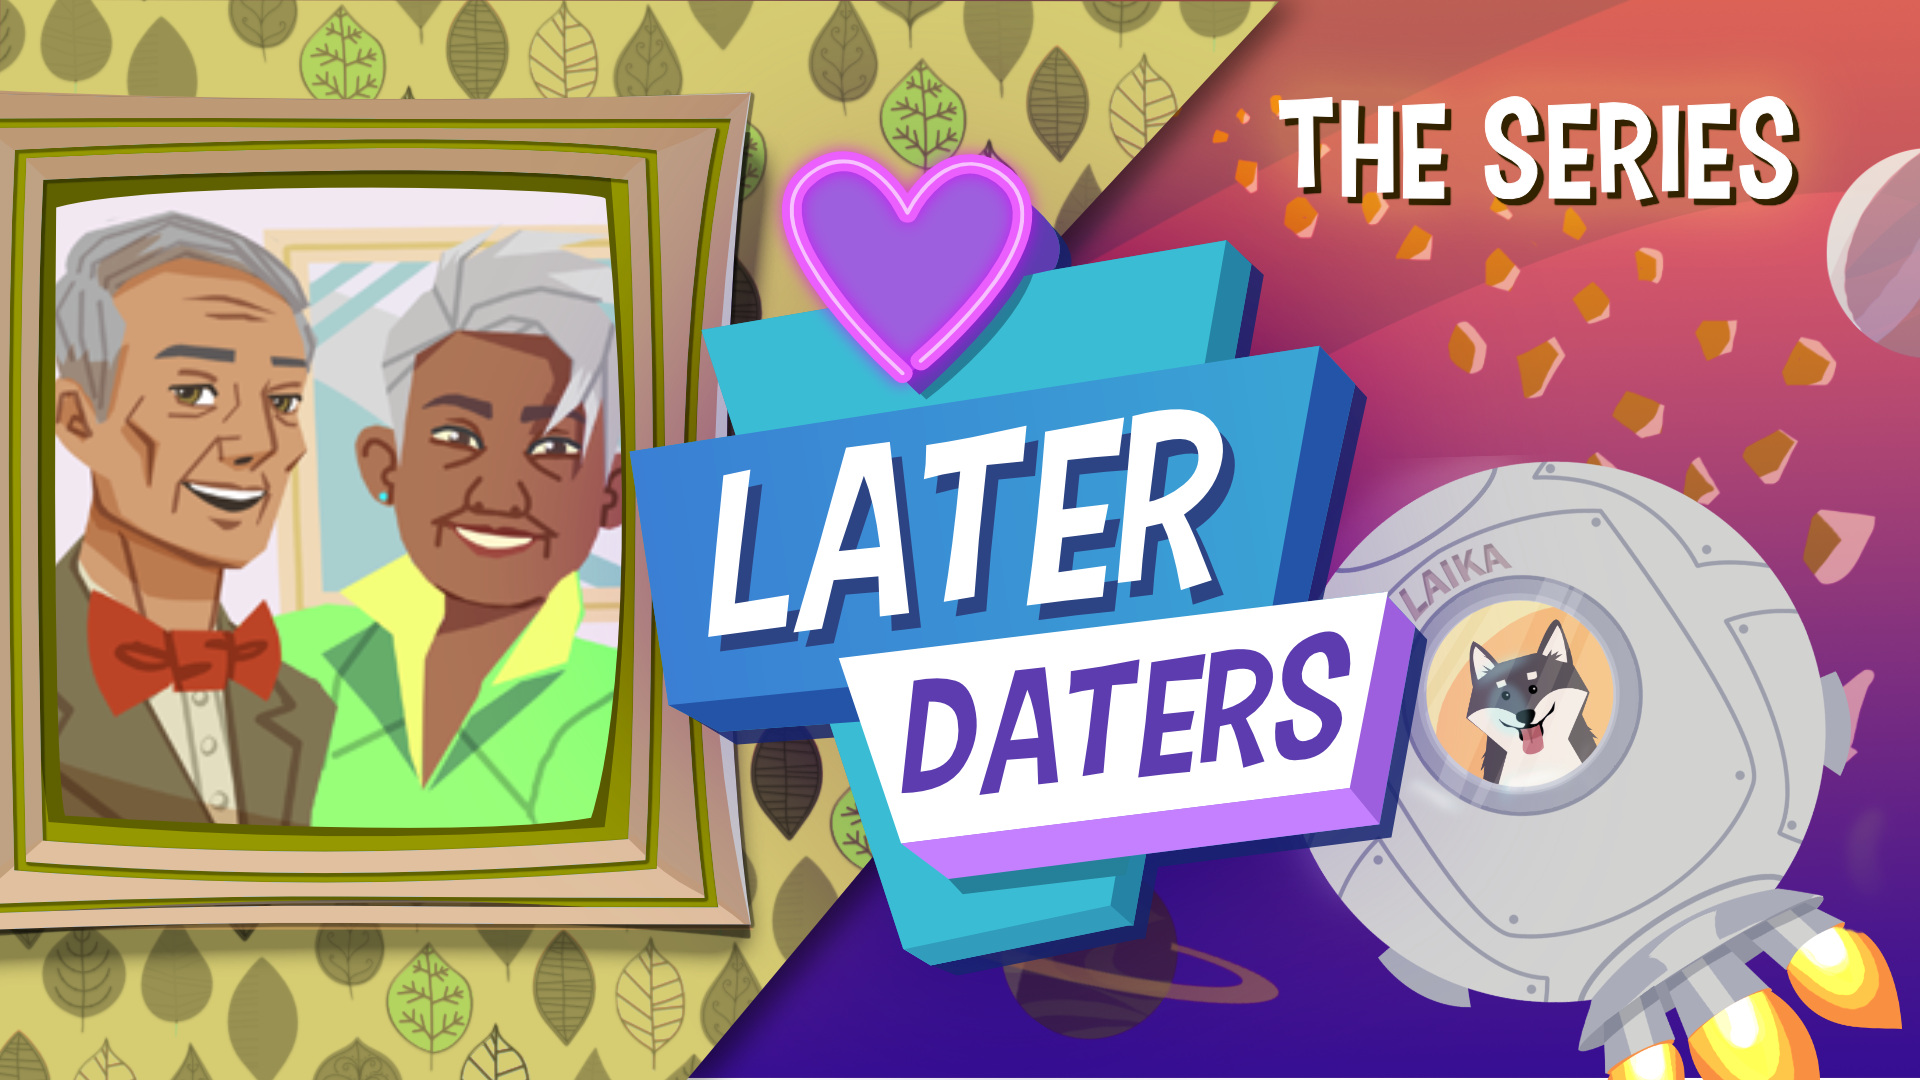 Later Daters: The Series